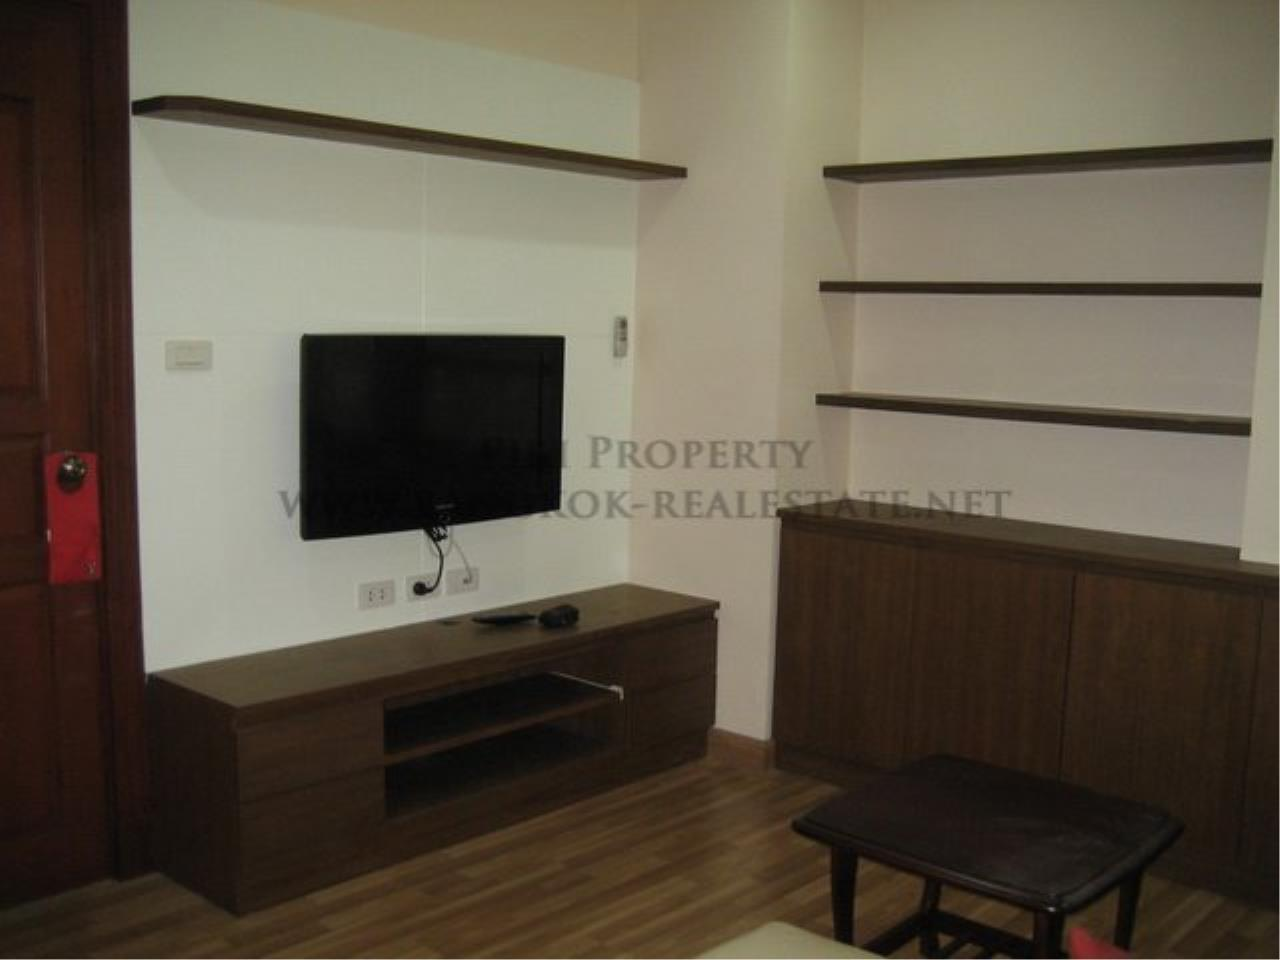 Piri Property Agency's PG Rama 9 - One Bedroom Unit for Rent - Next to Central Rama 9 2